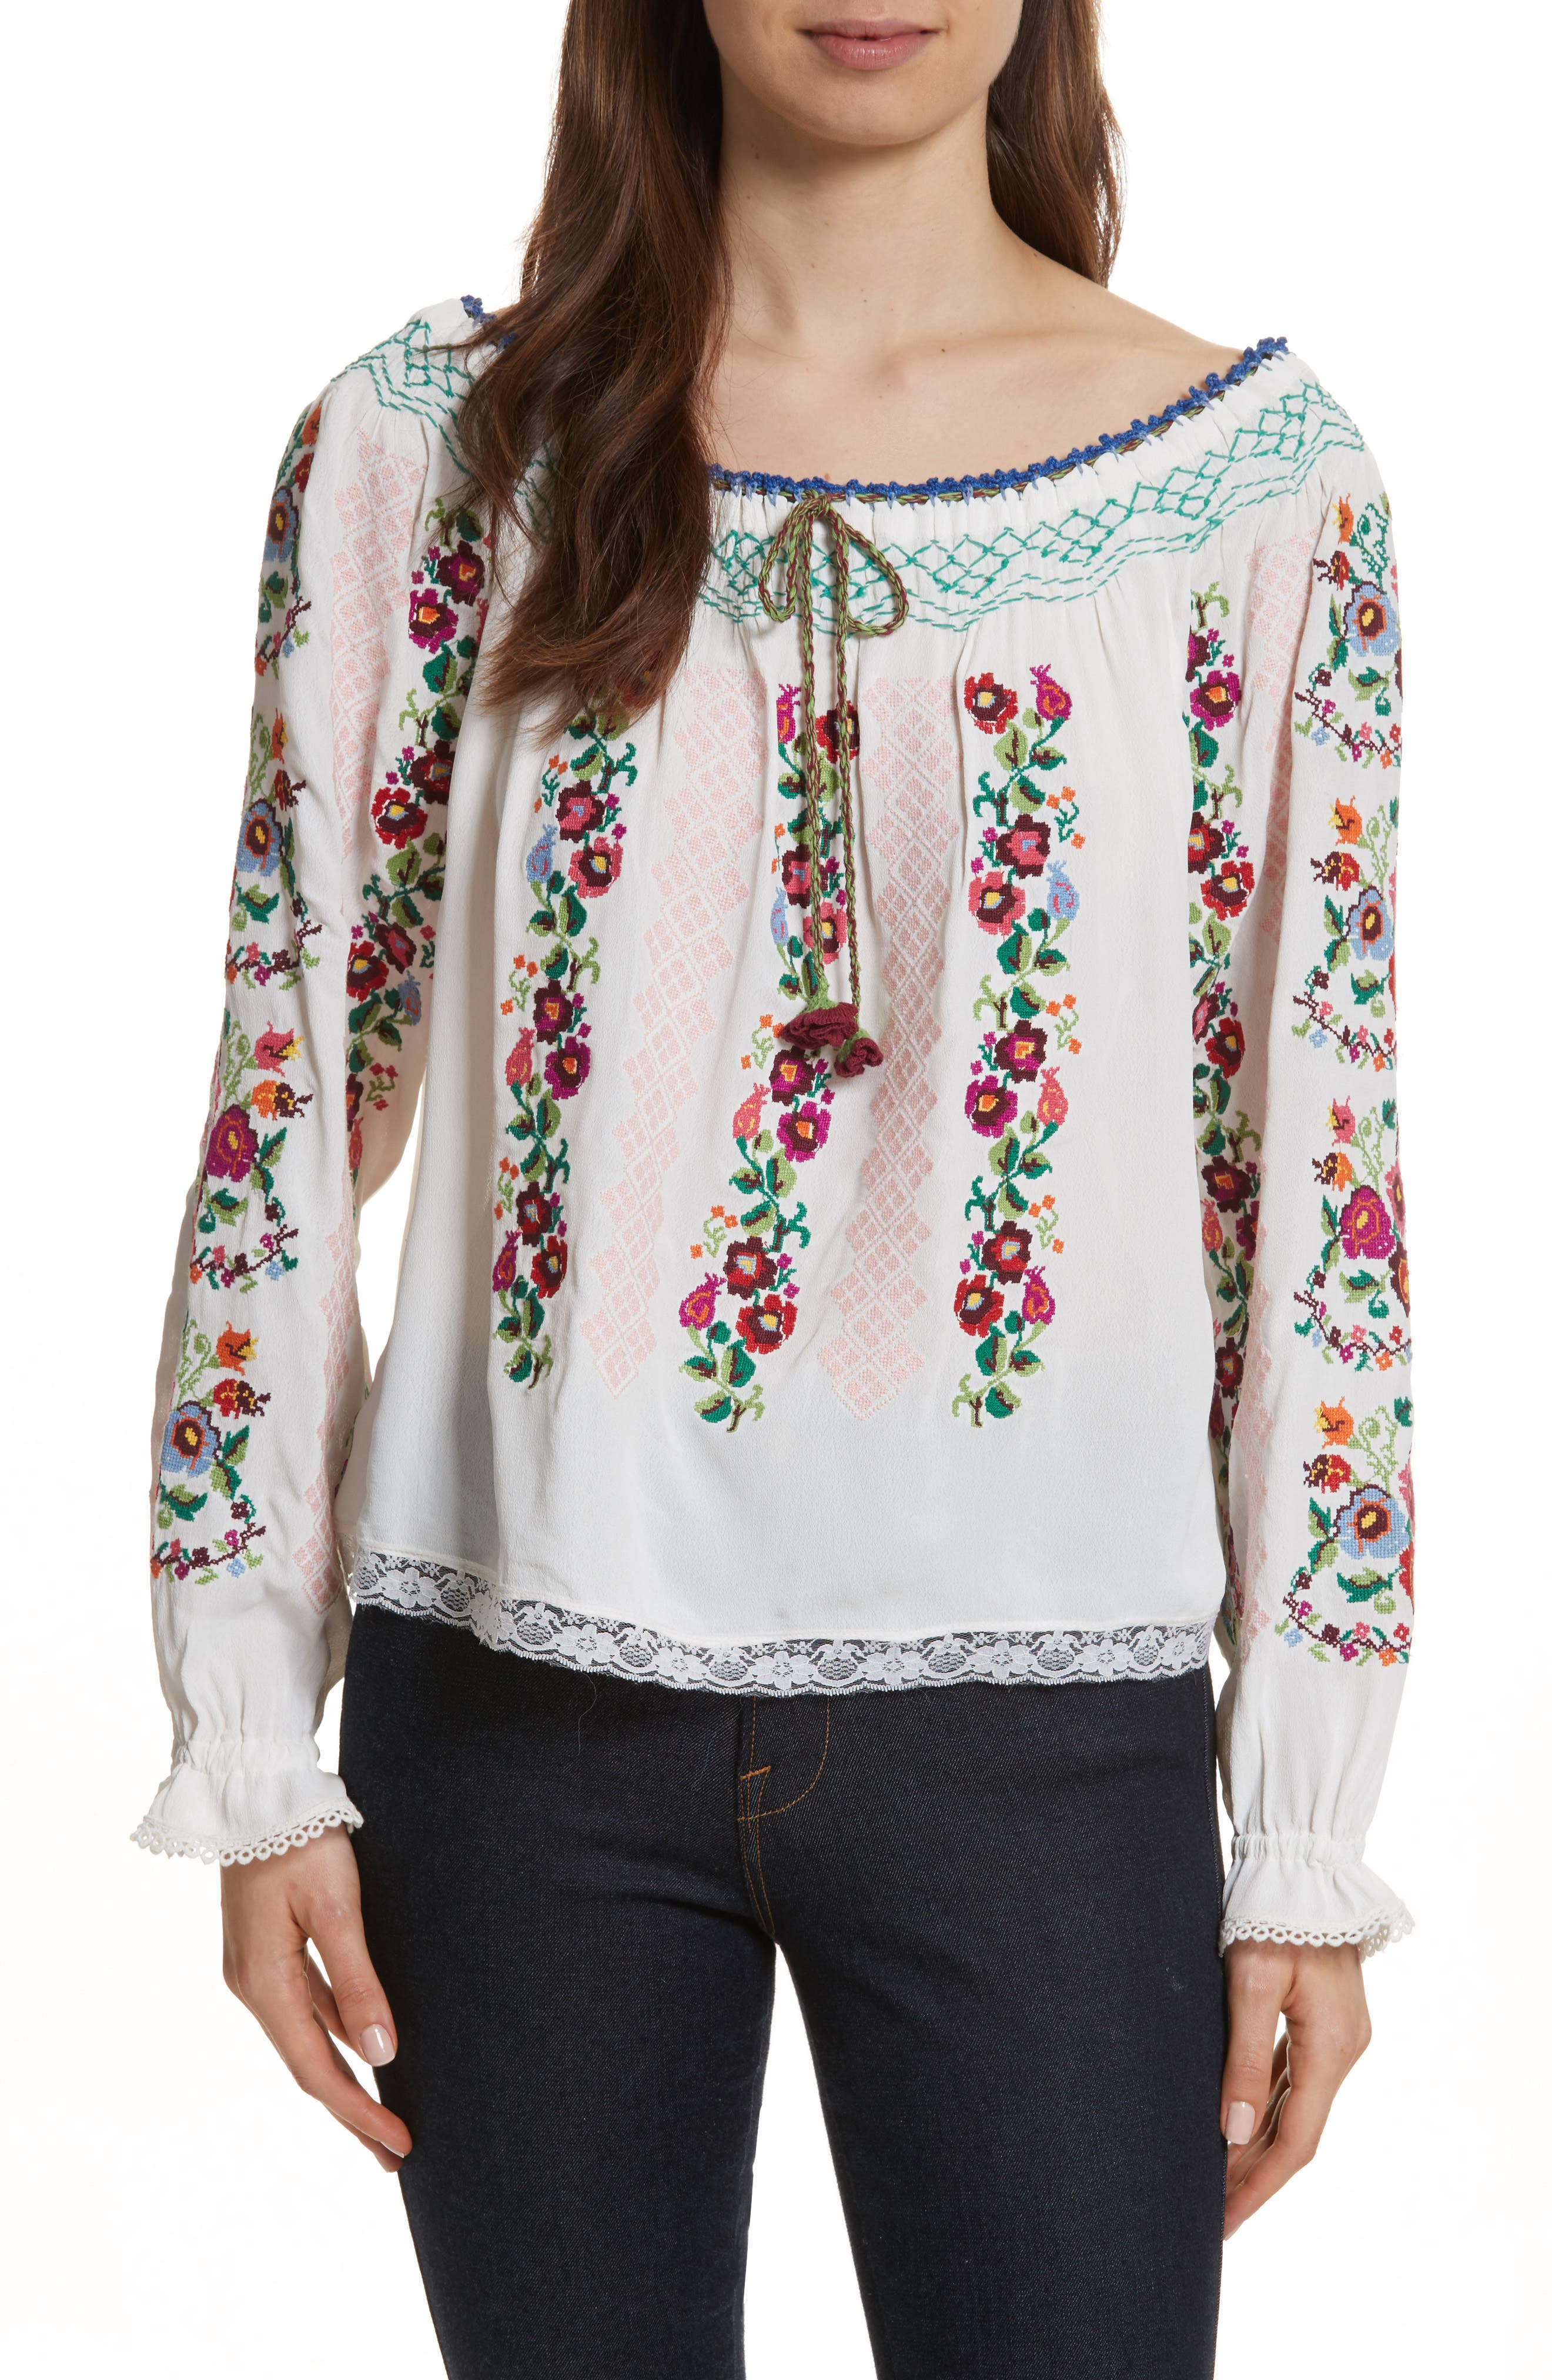 Alternate Image 1 Selected - Needle & Thread Cross Stitch Floral Top